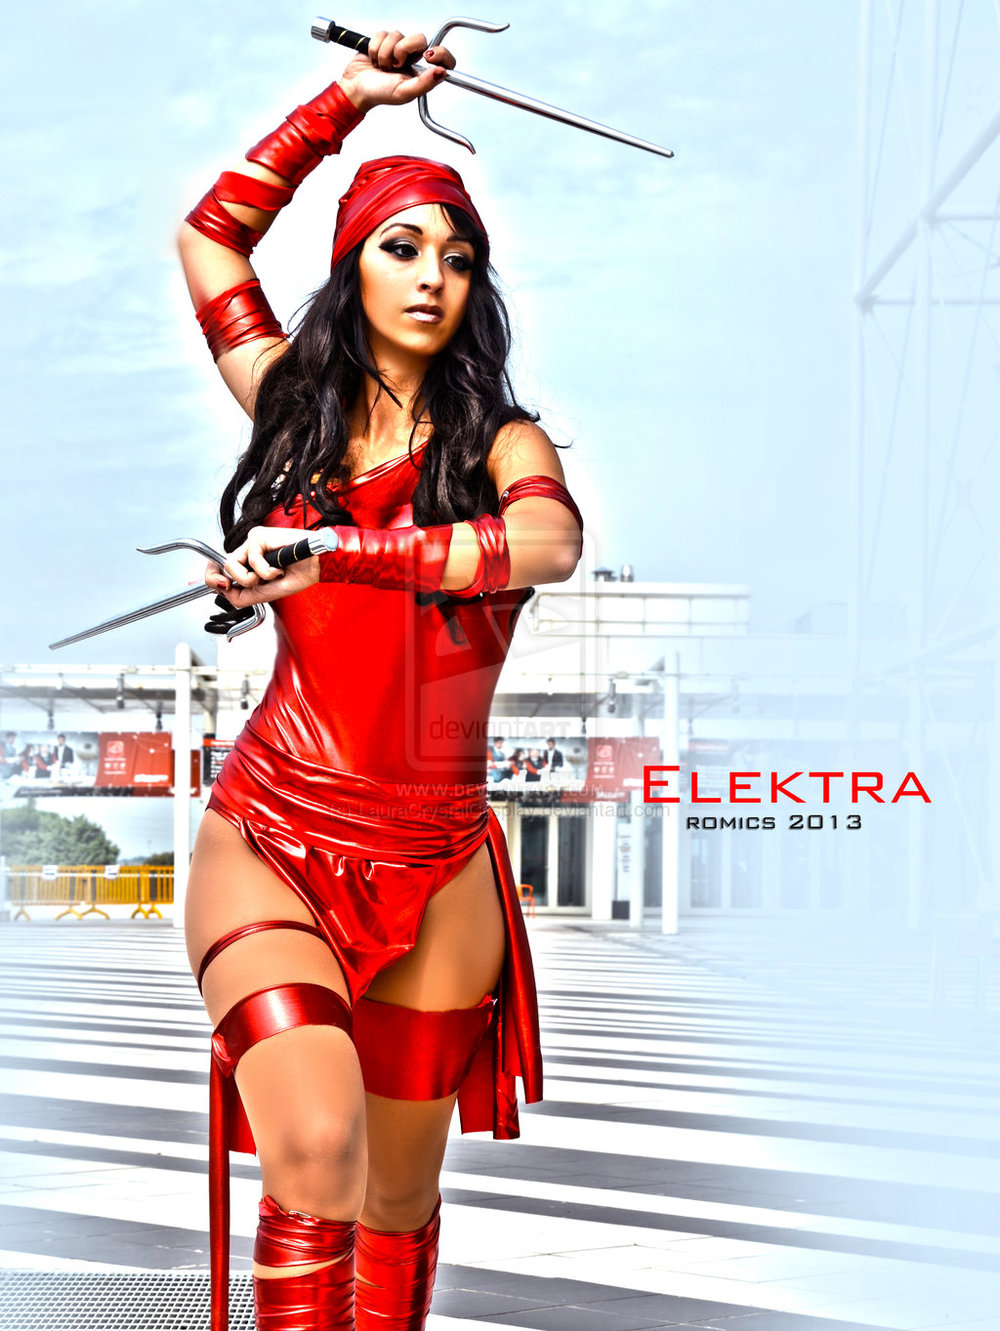 Laura Crystal Cosplay  is Elektra | Photo by:  Photostudiolight